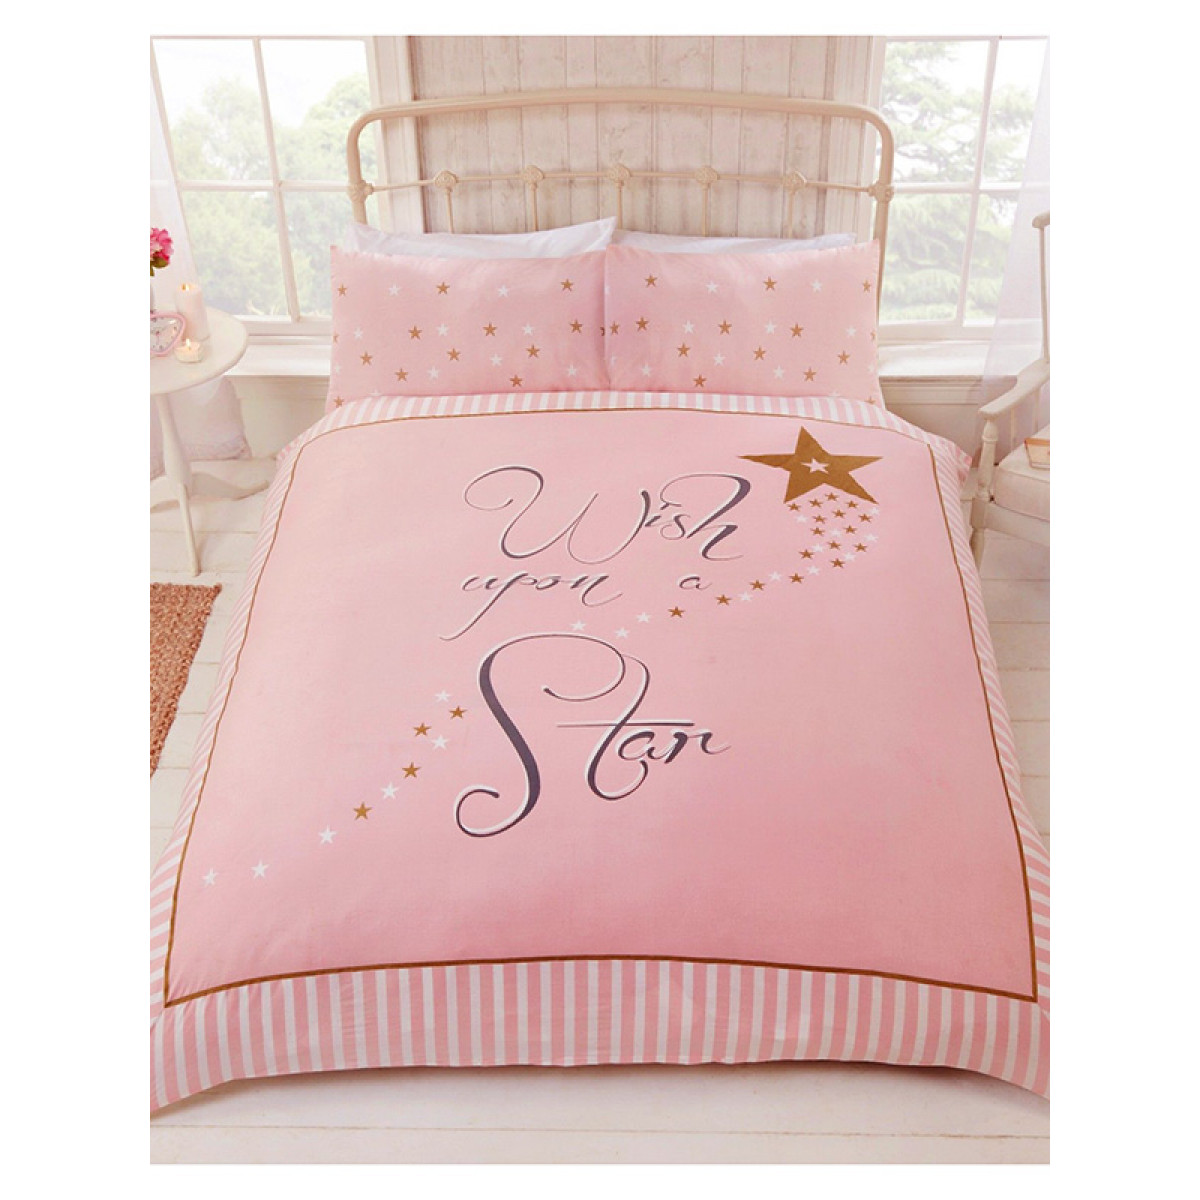 bedding way products artbedding orion set milky universe space deep nasa cluster galaxy nebula cover in duvet sateen star stars